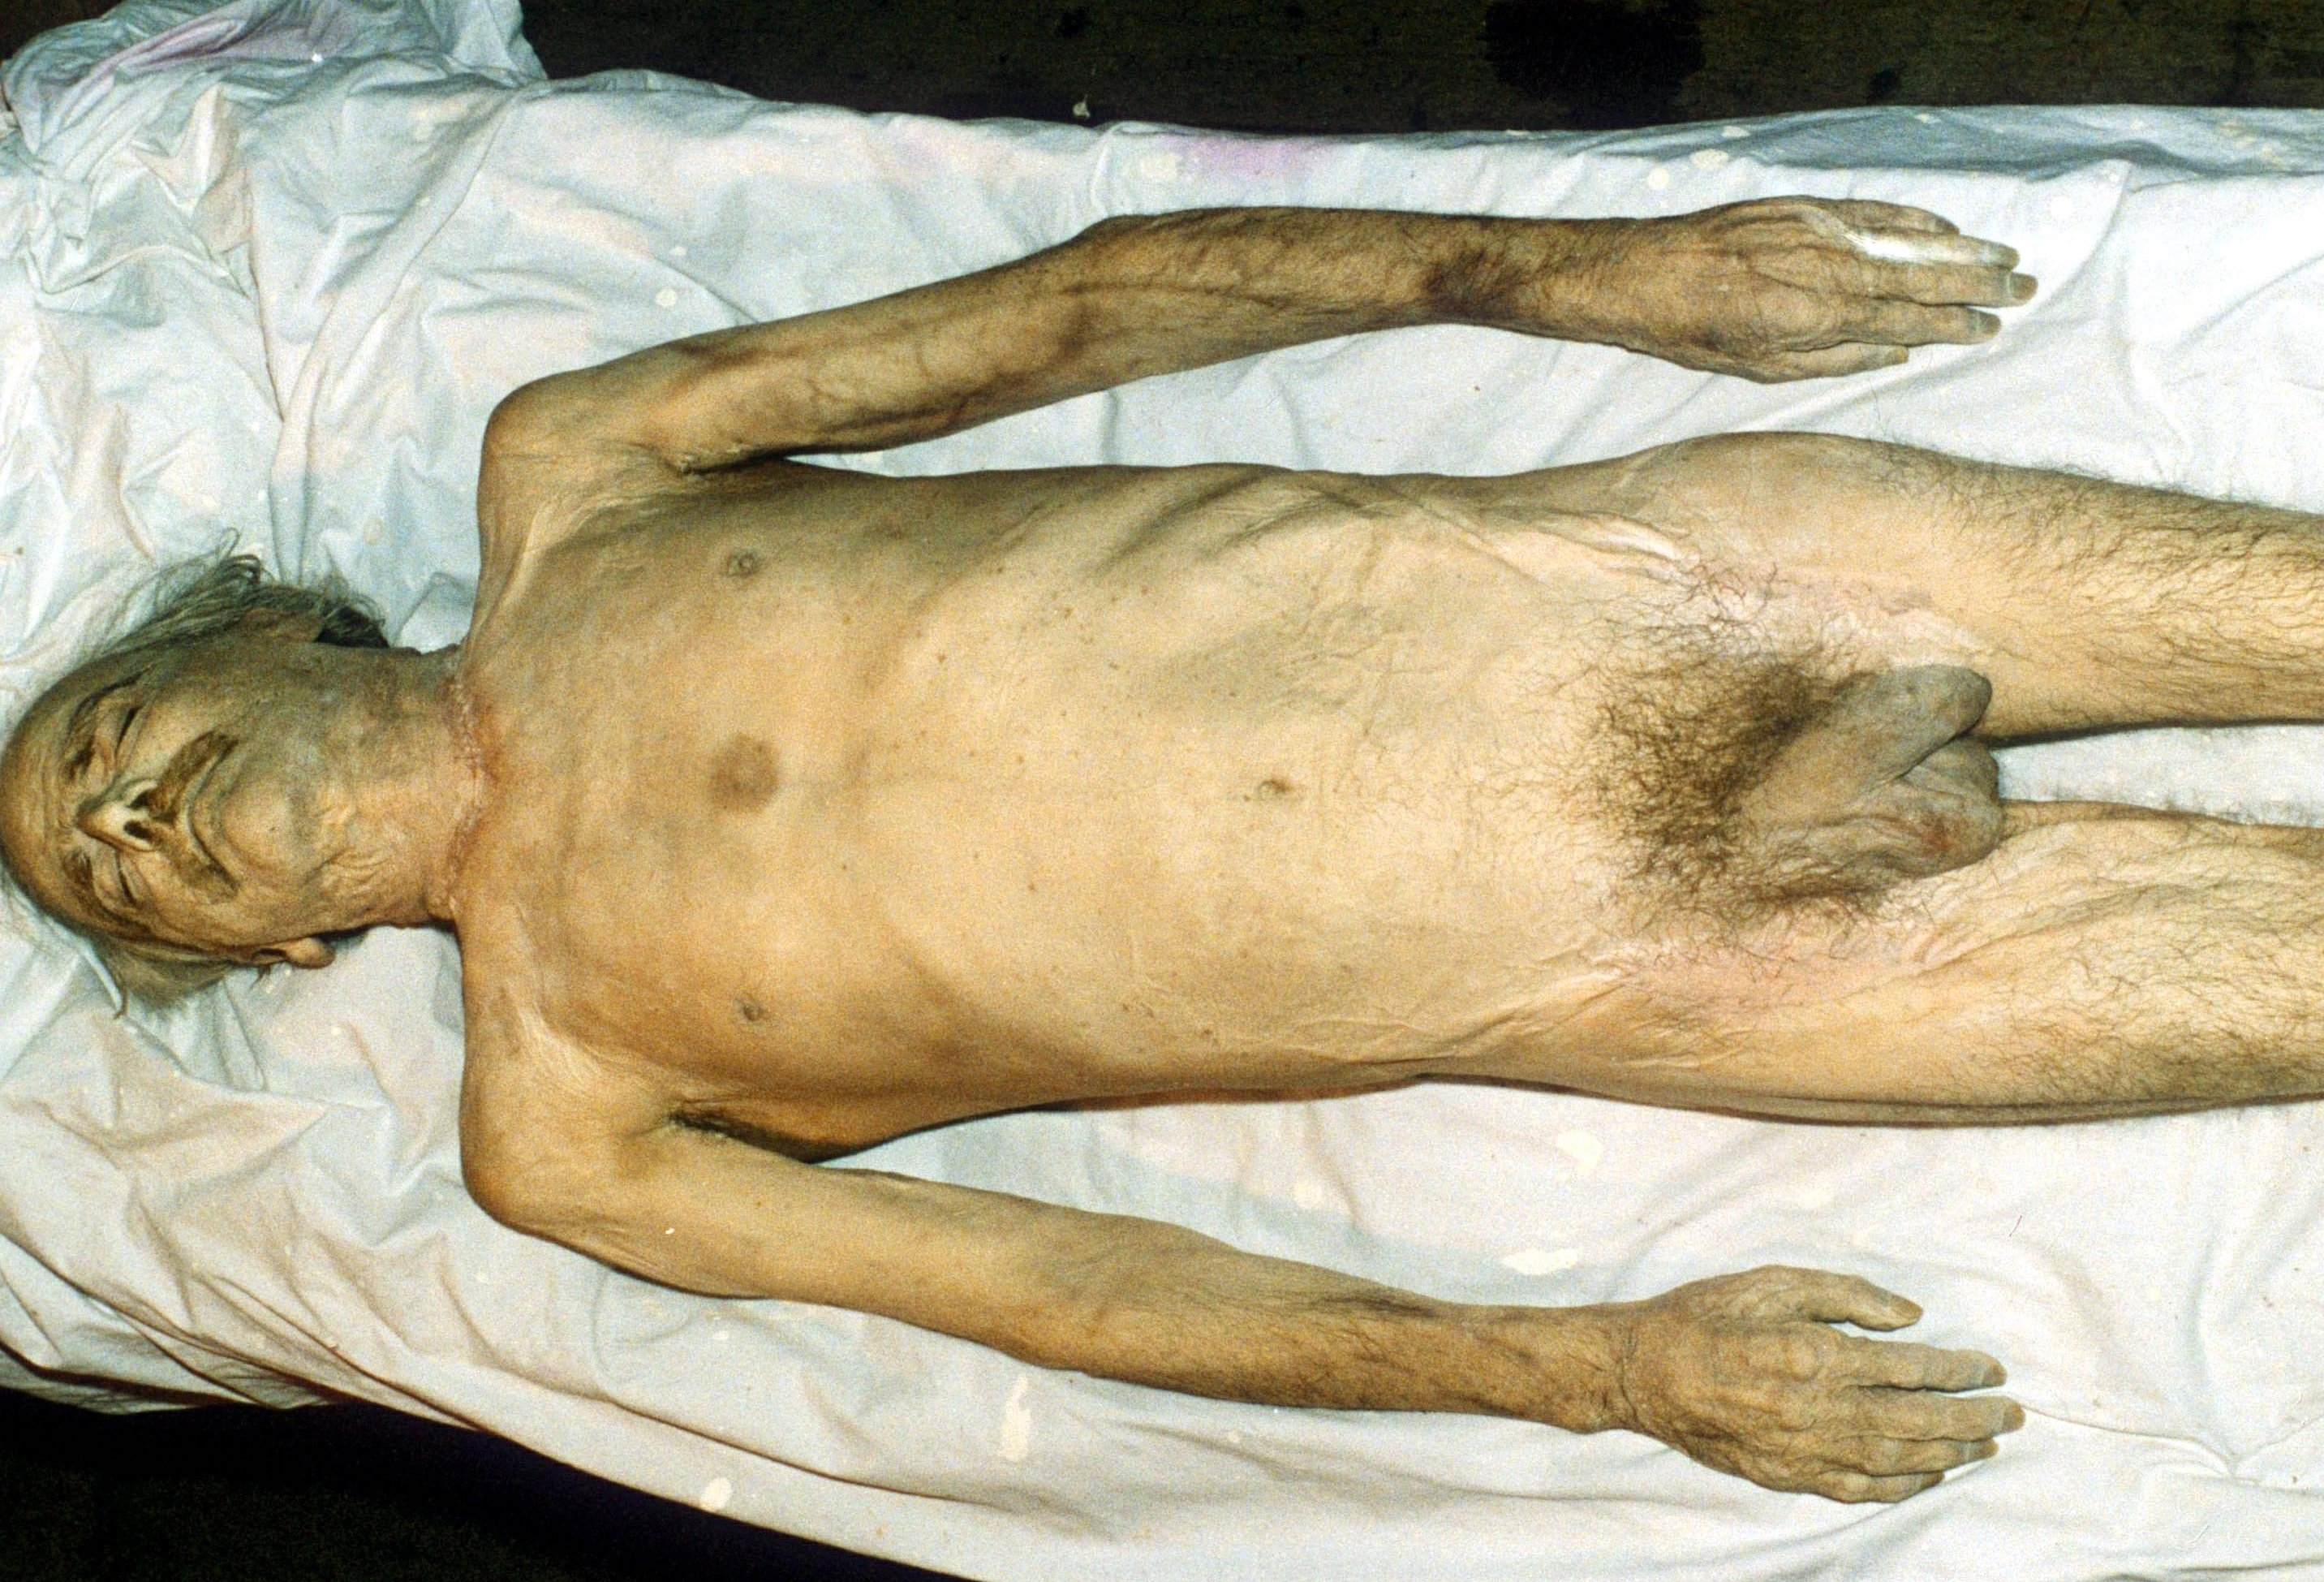 DEAD BODY OF EDWIN MCKENZIE EDWIN MCKENZIE,TRAMP KNOWN AS 'DIOGENES', EMBALMED BY ARTIST ROBERT LENKIEWICZ, PLYMOUTH, DEVON, BRITAIN - 1985